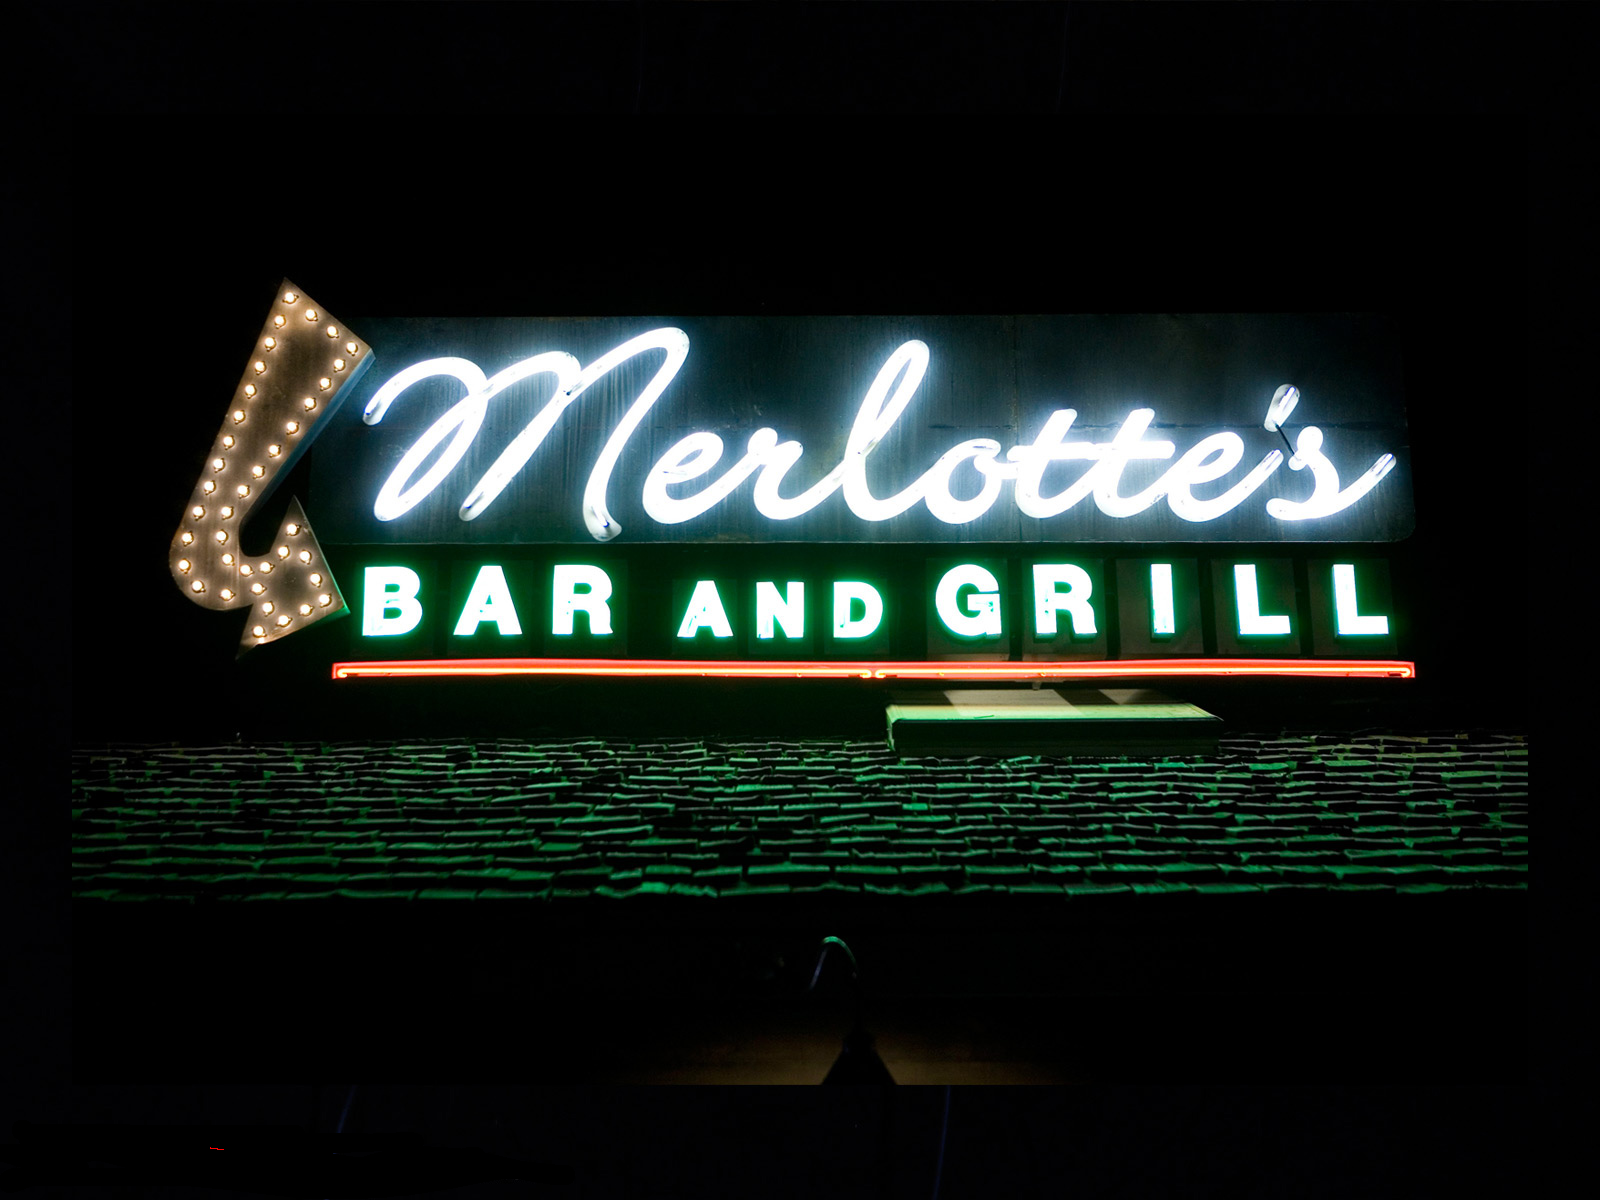 merlottes-bar-and-grill-1600